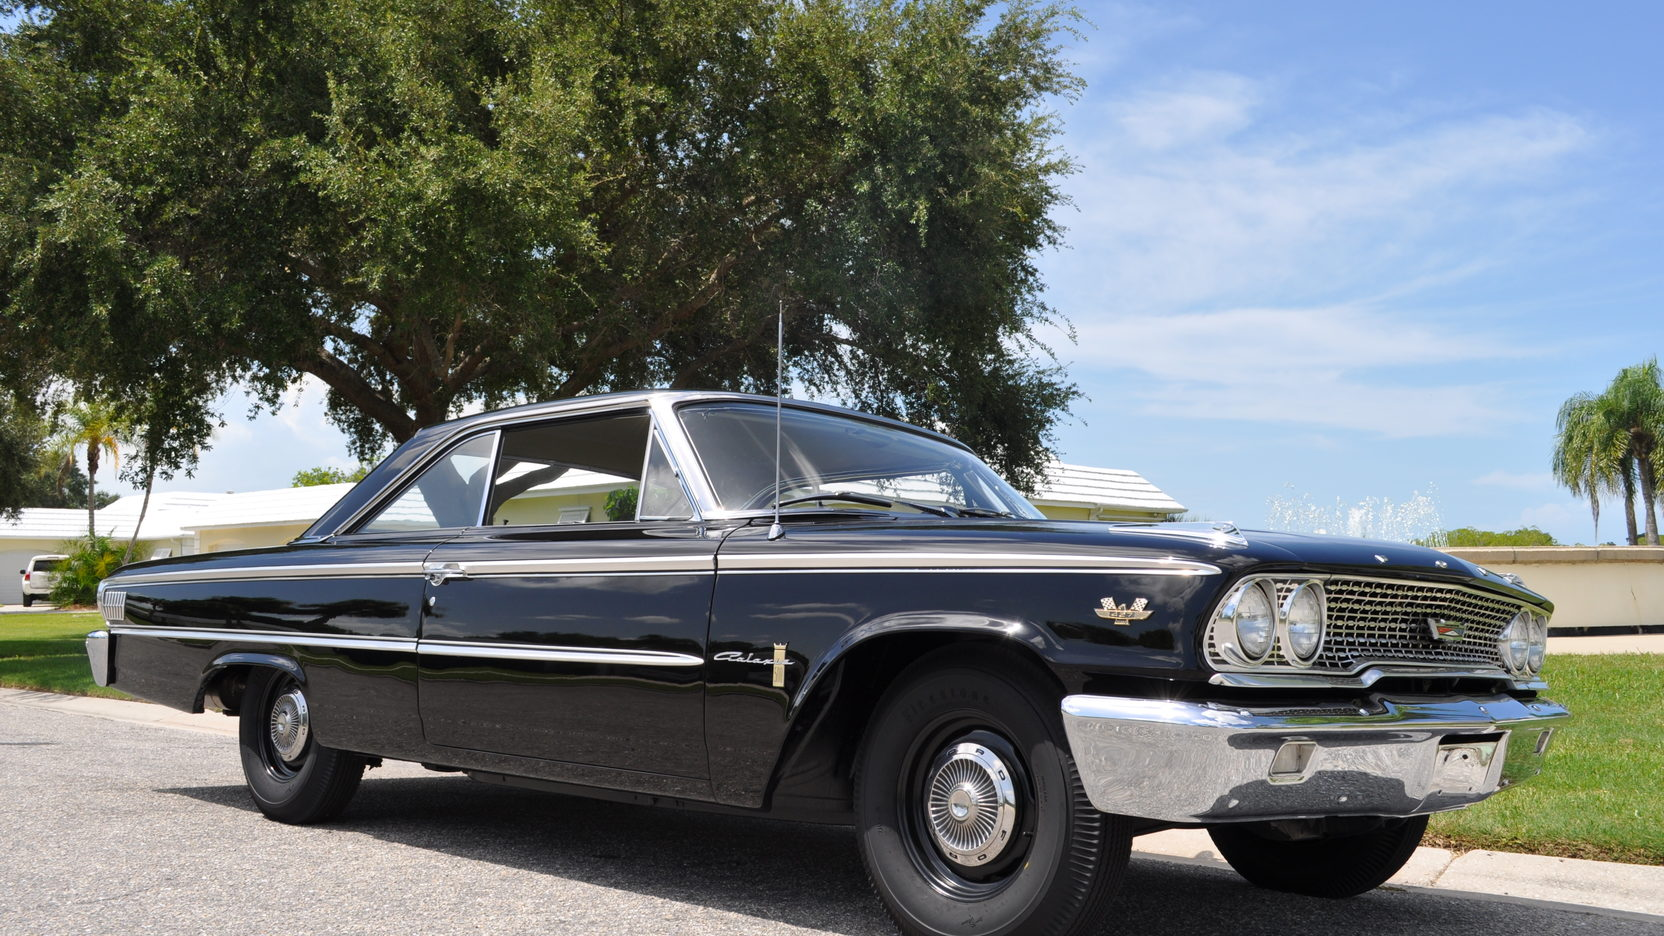 1963 Ford Galaxie Sportsroof front 3/4